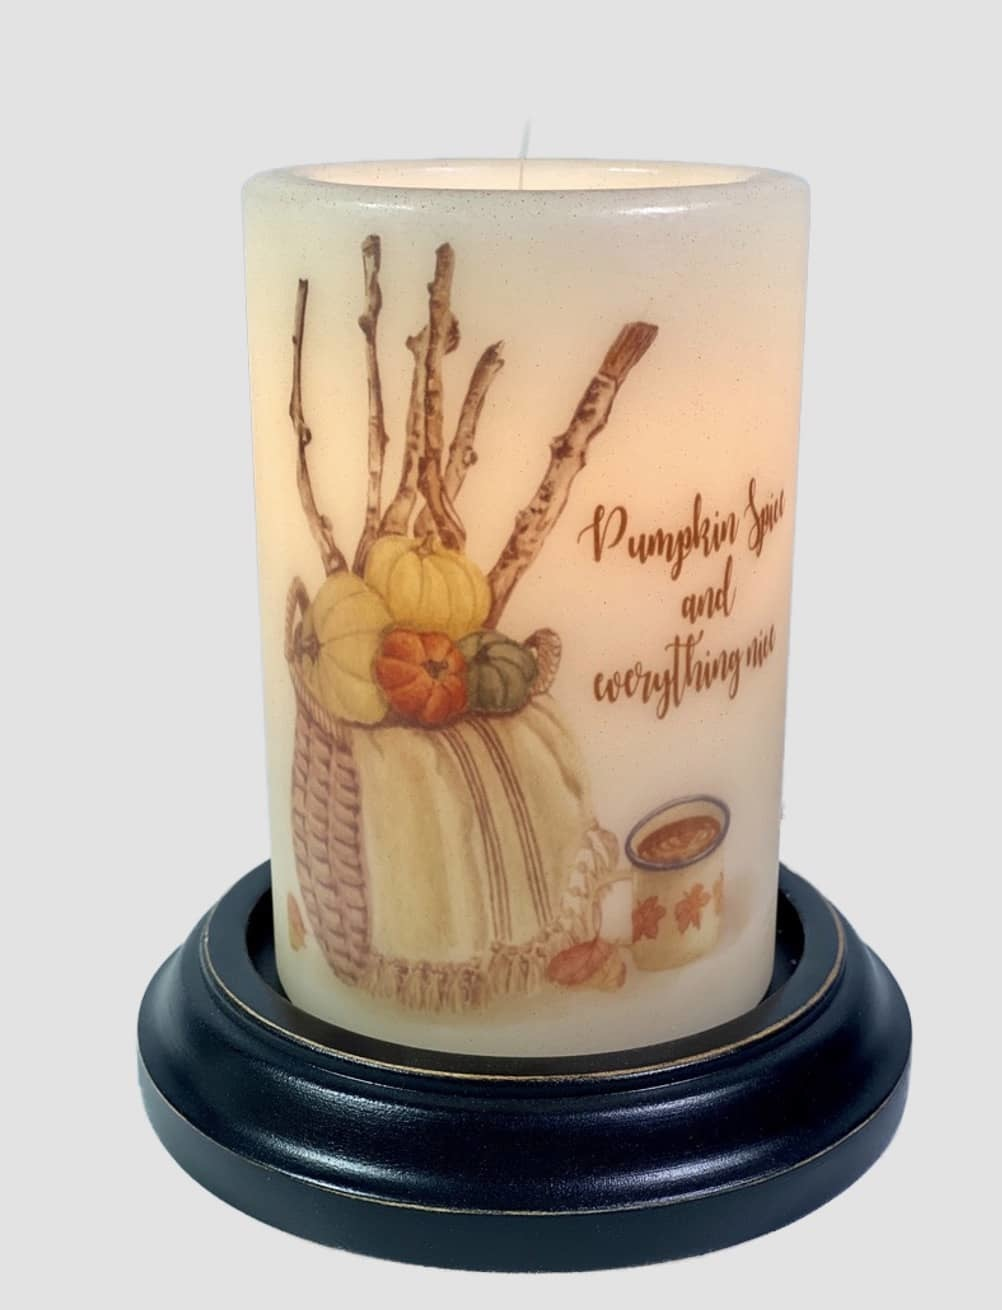 C R Designs Pumpkin Spice & Everything Nice Candle Sleeve